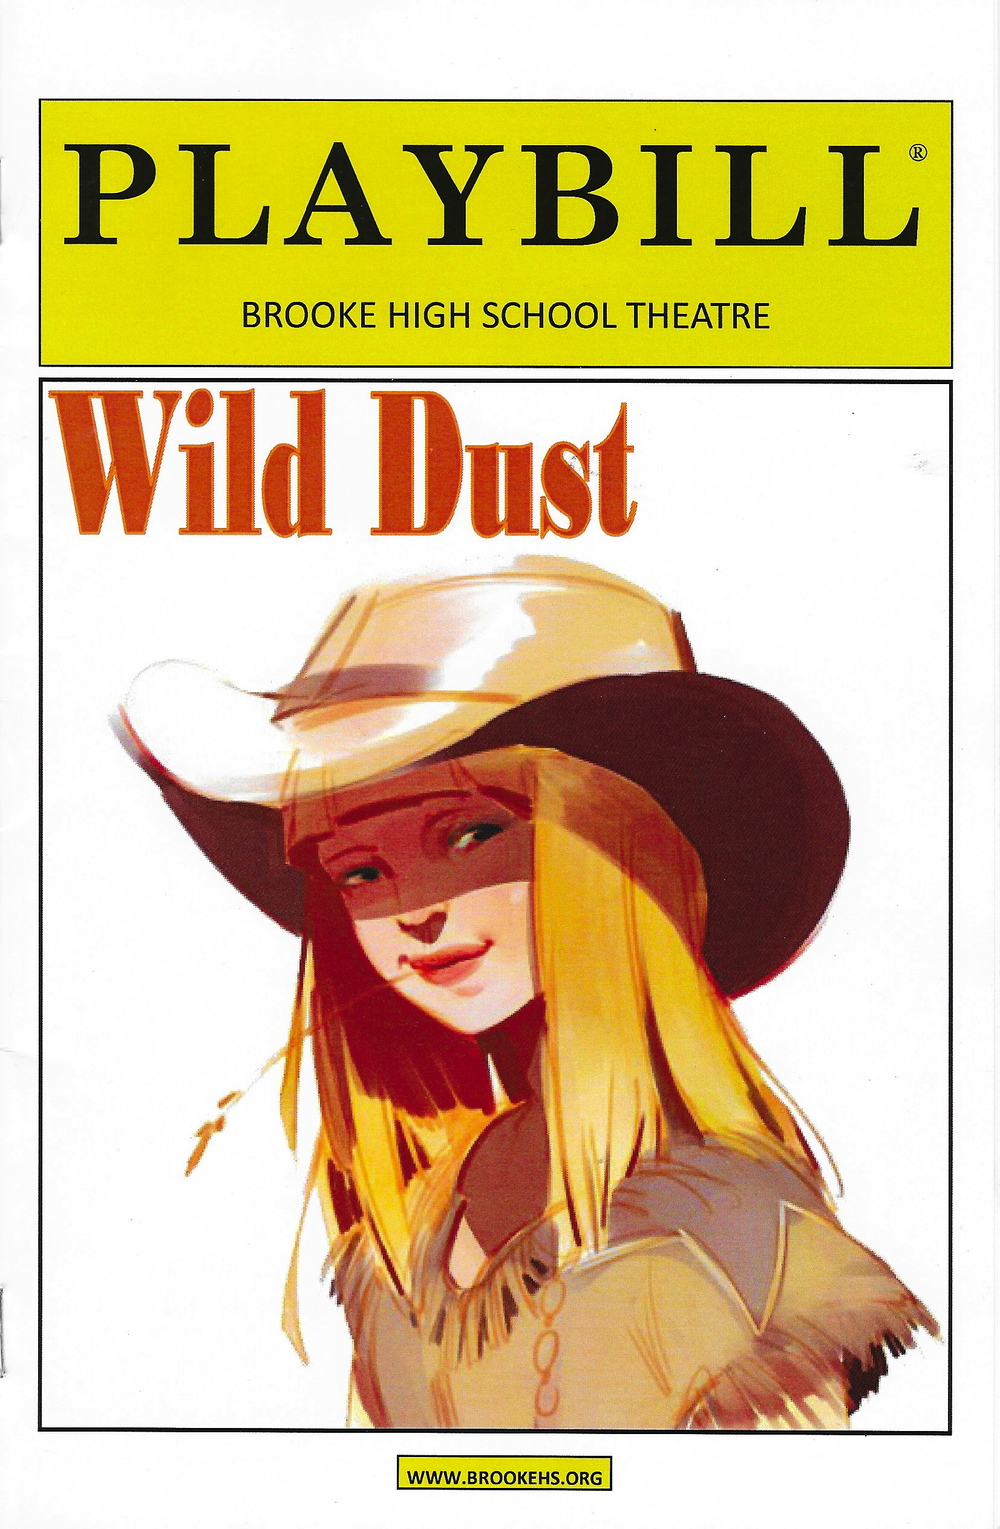 THE PLAYBILL FOR THE SECOND PERFORMANCE, WILD DUST